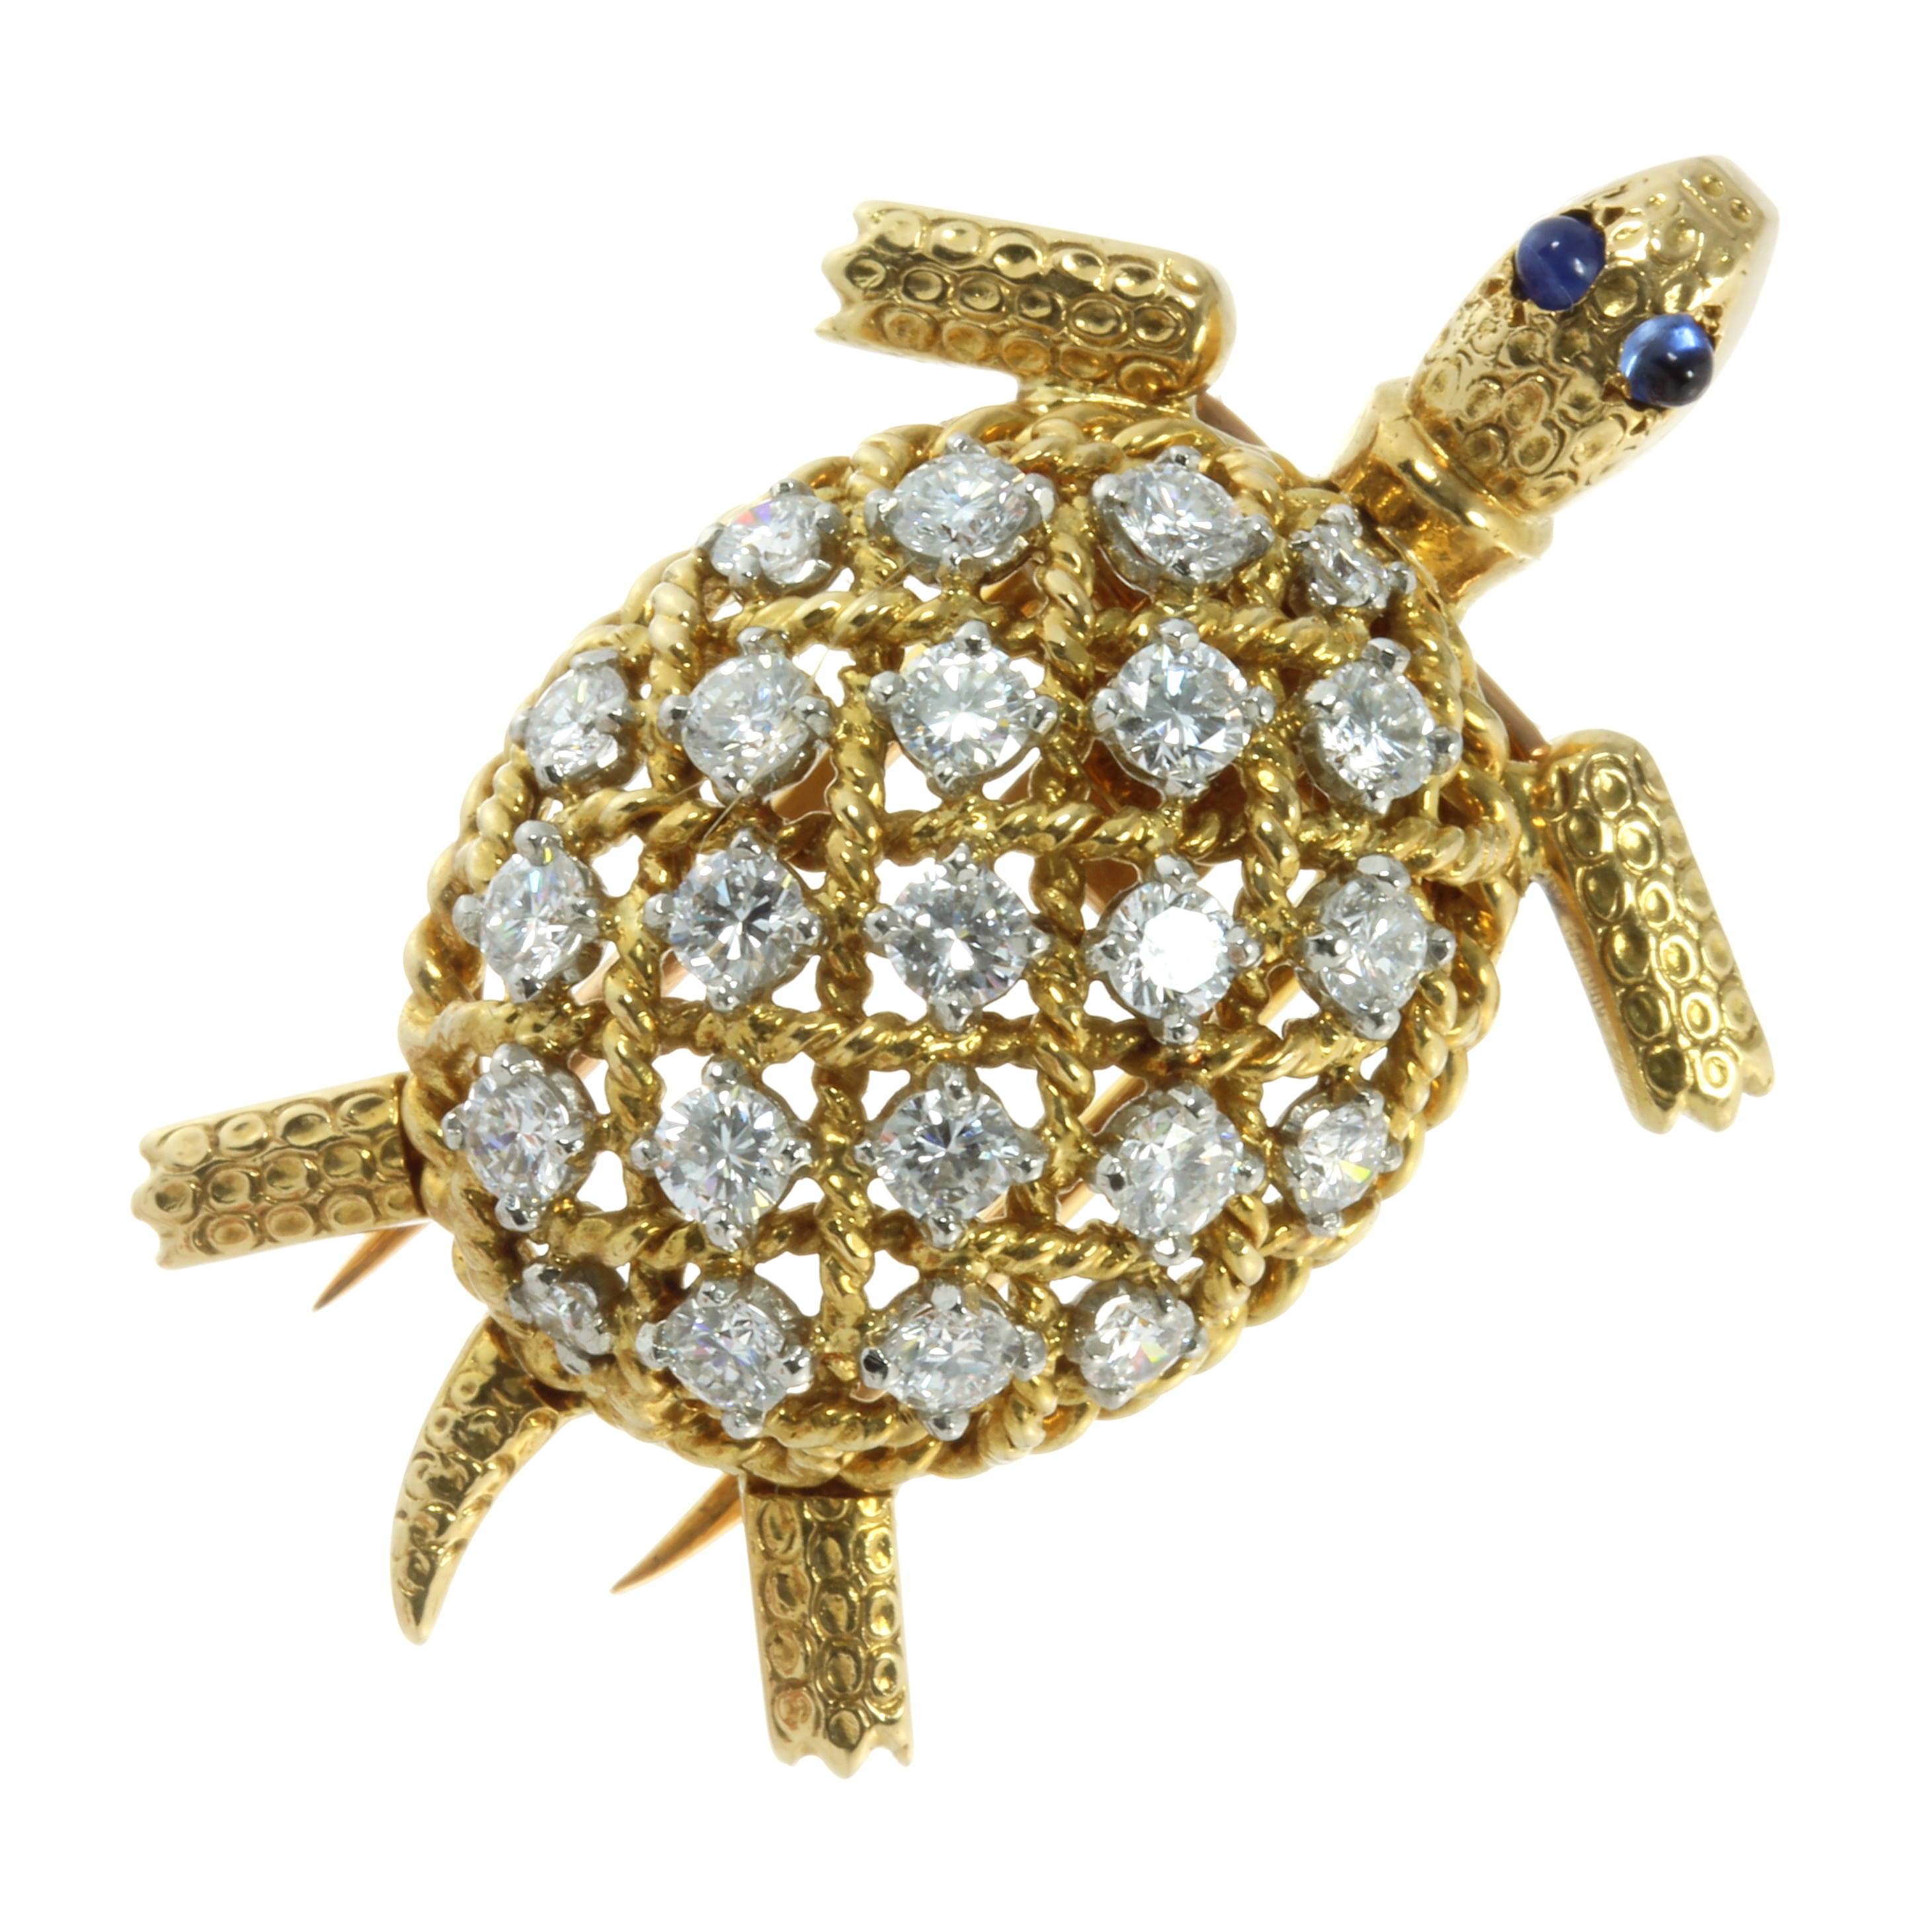 Los 65 - A DIAMOND AND SAPPHIRE TURTLE BROOCH, CARTIER in 18ct yellow gold modelled as a turtle, its shell